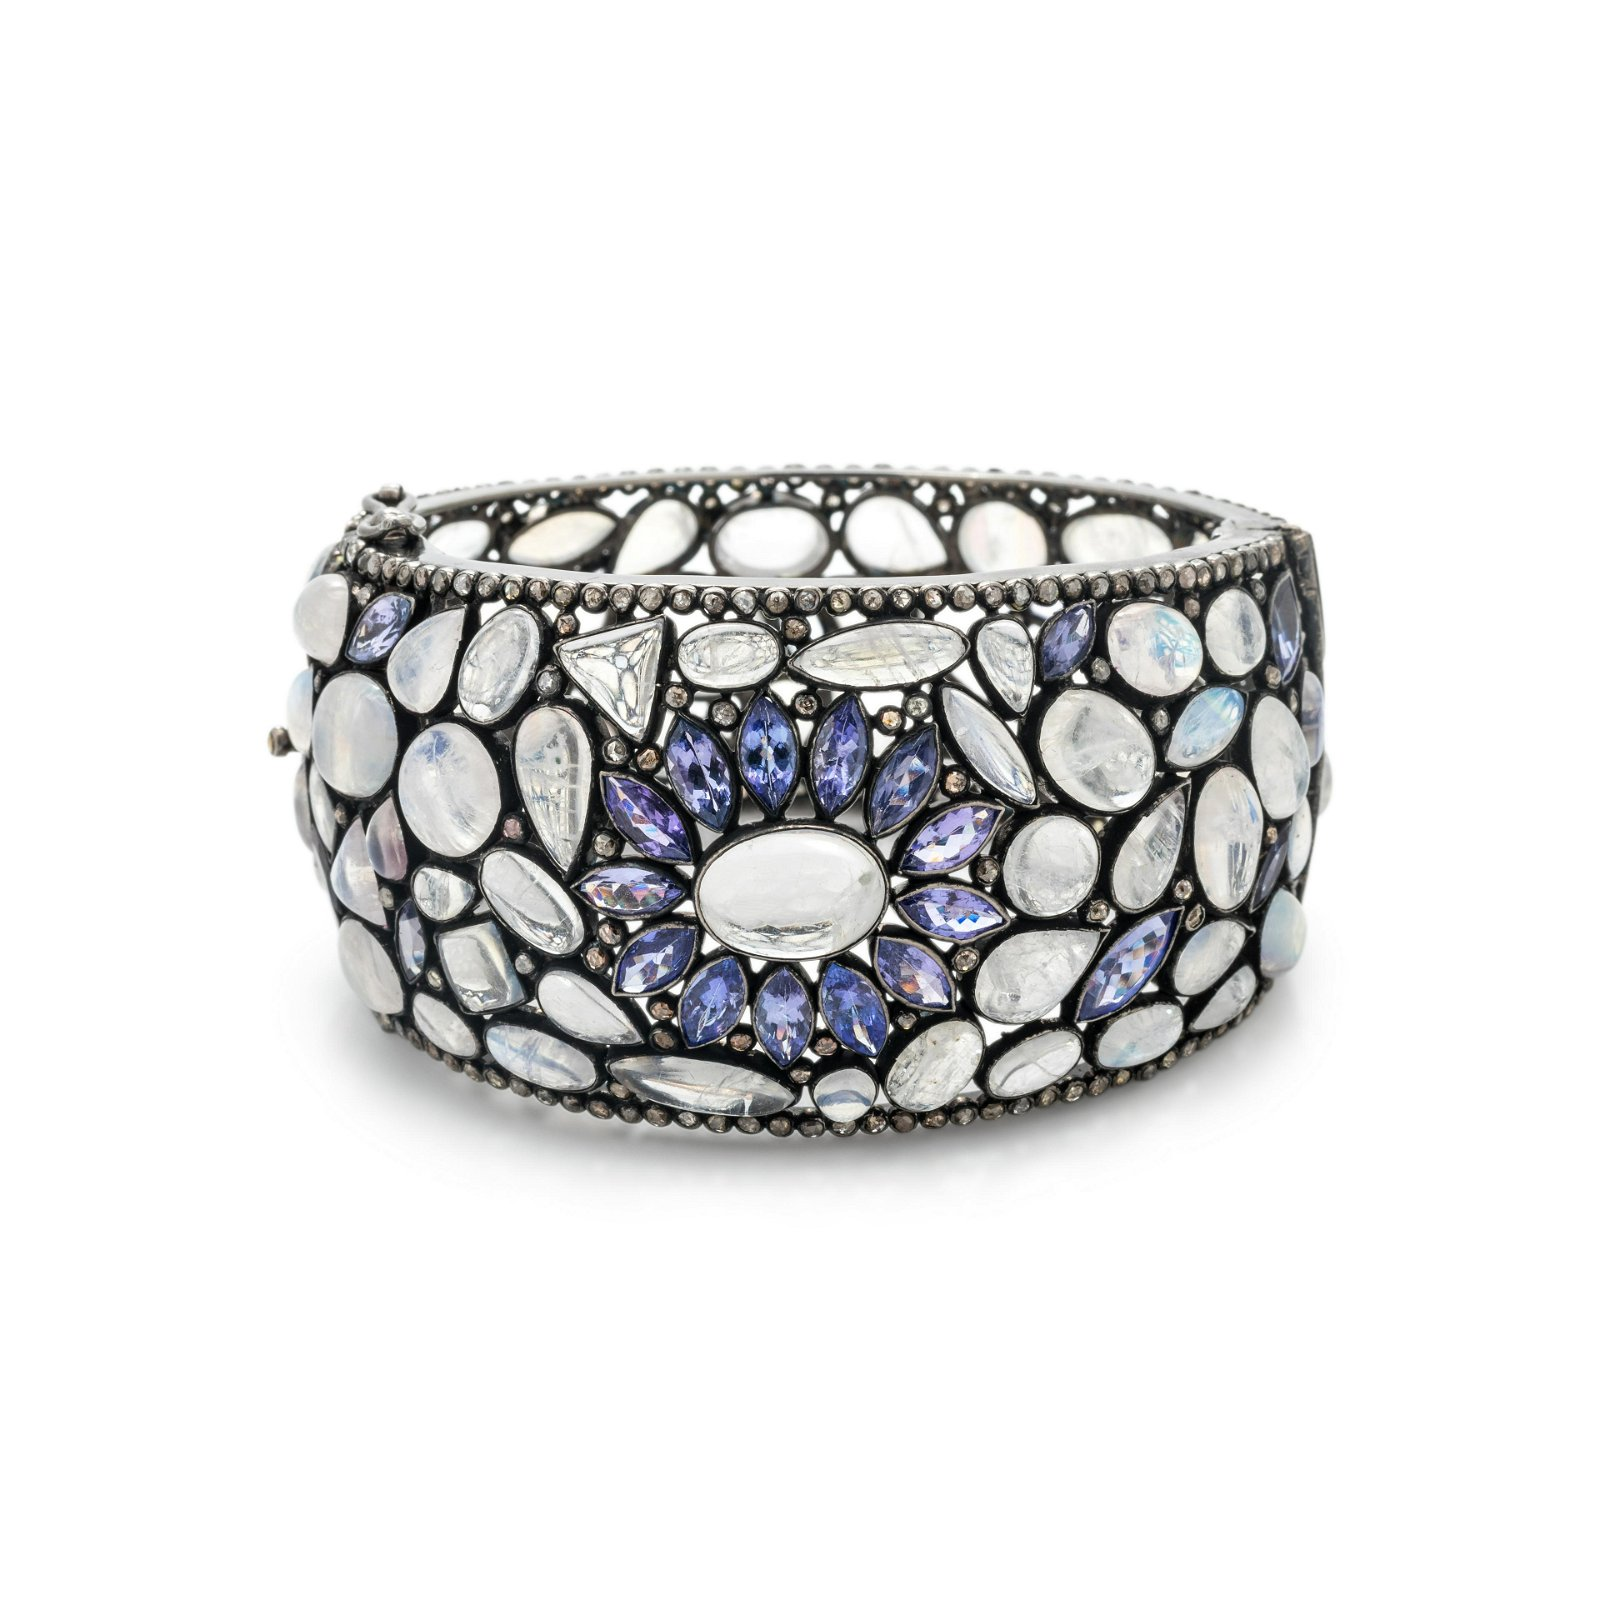 MOONSTONE, IOLITE and DIAMOND BANGLE BRACELET